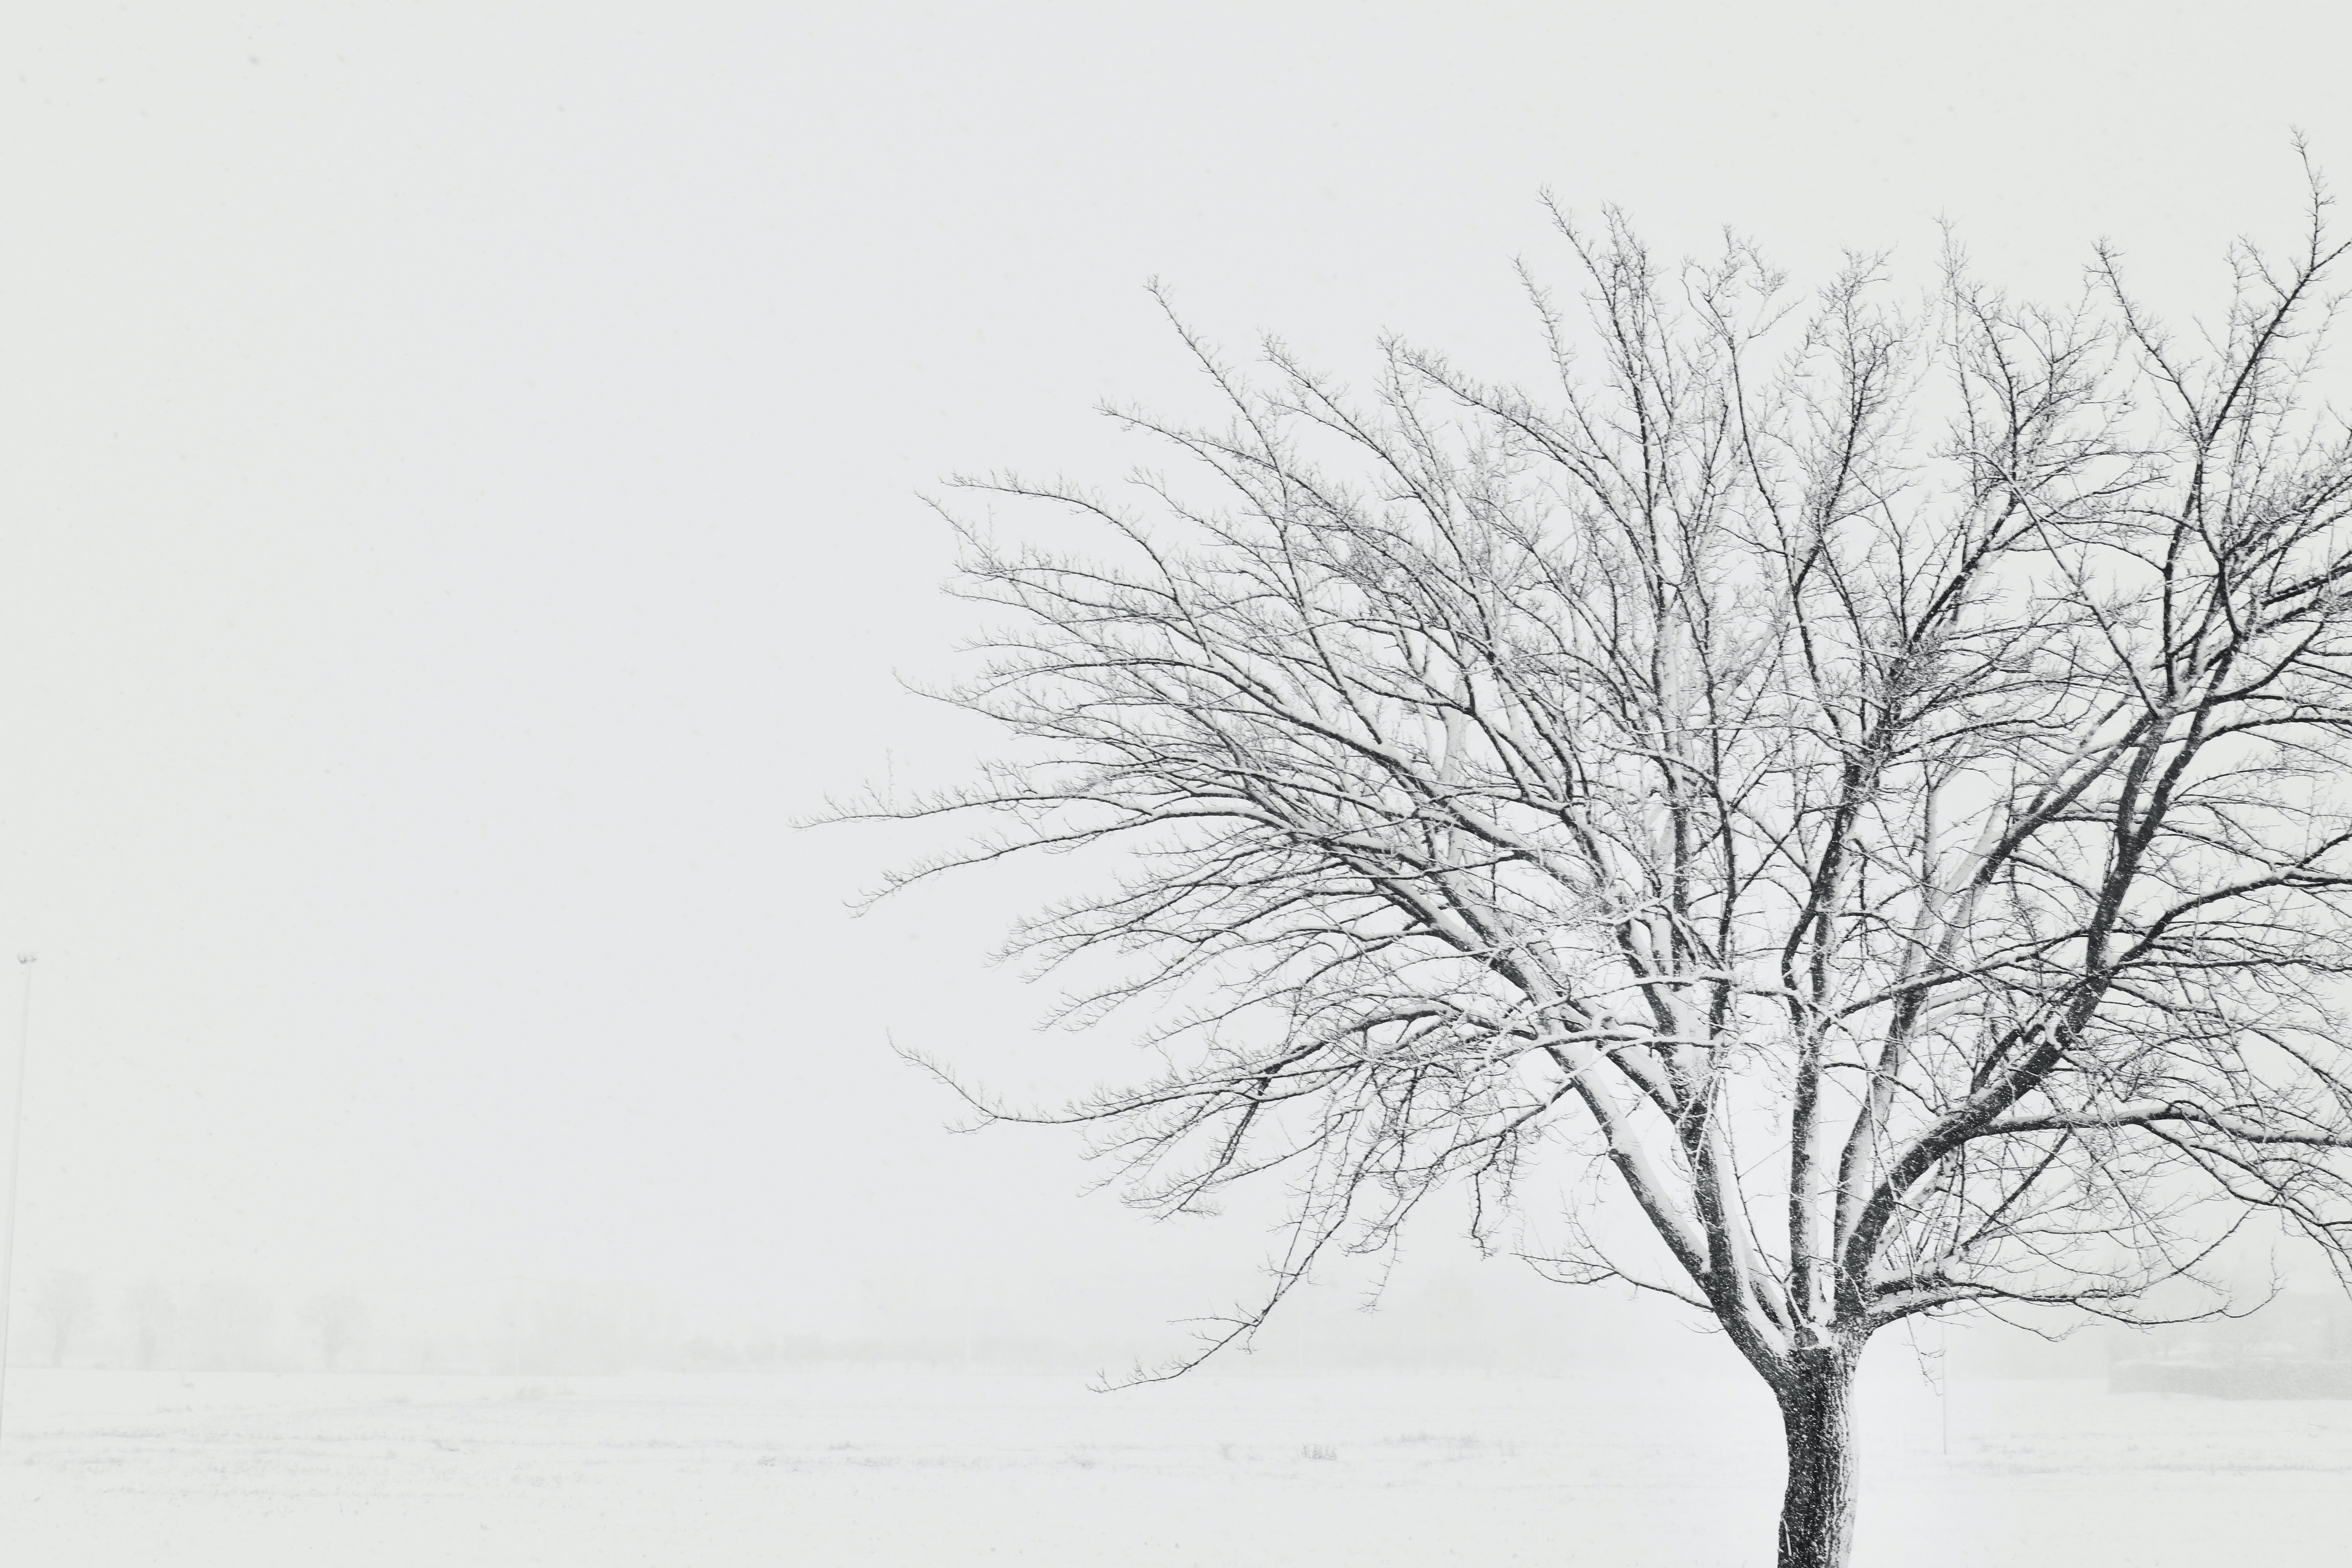 snow covered withered tree on snow field